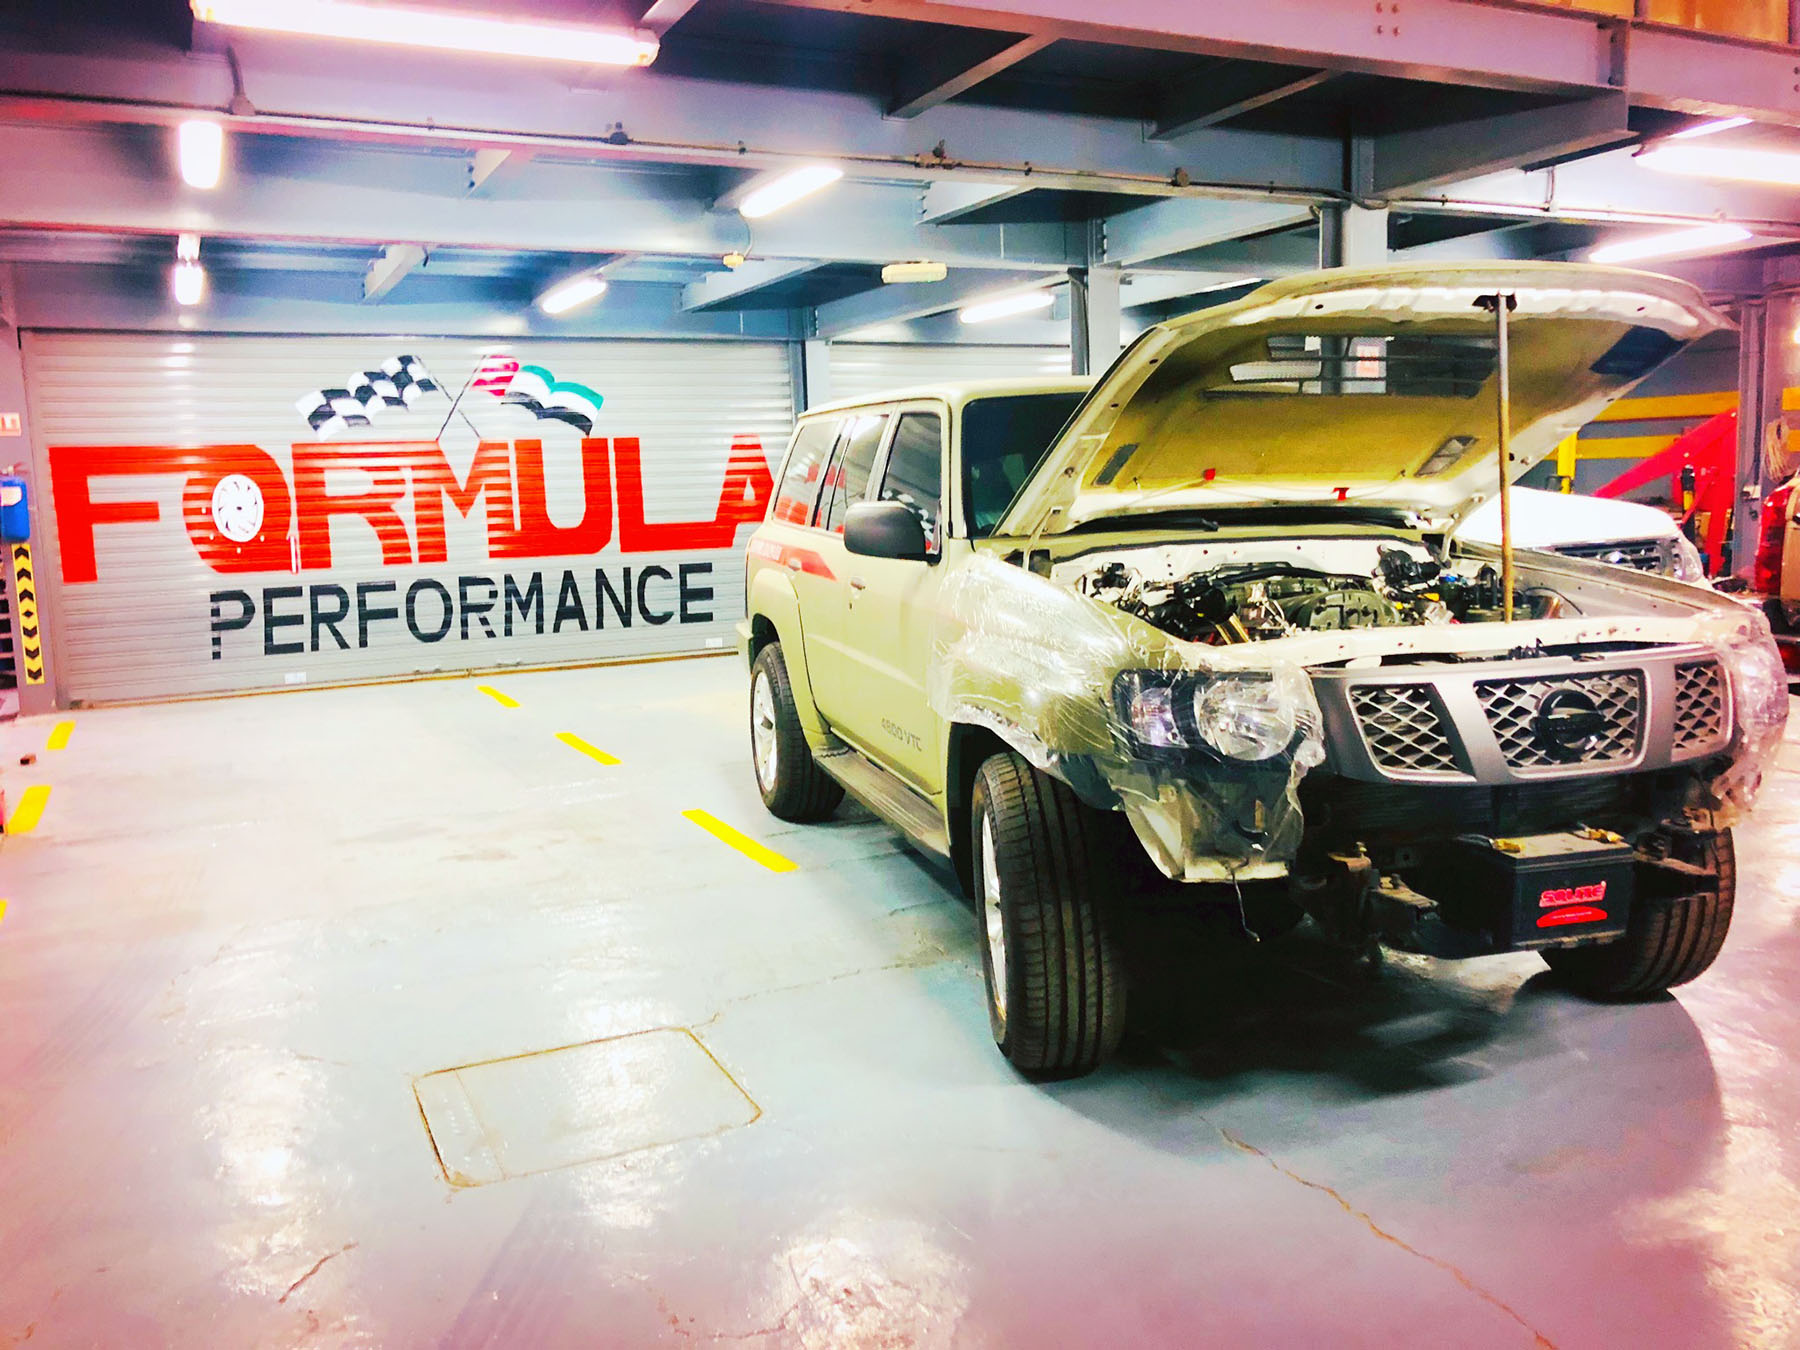 Nissan Patrol With An Audi V10 Engine Swap Depot Wiring Harness Bader Ahli From Formula Performance Garage In Dubai Is Building Saeed Alfalasi Incredible Approached The Idea Of A